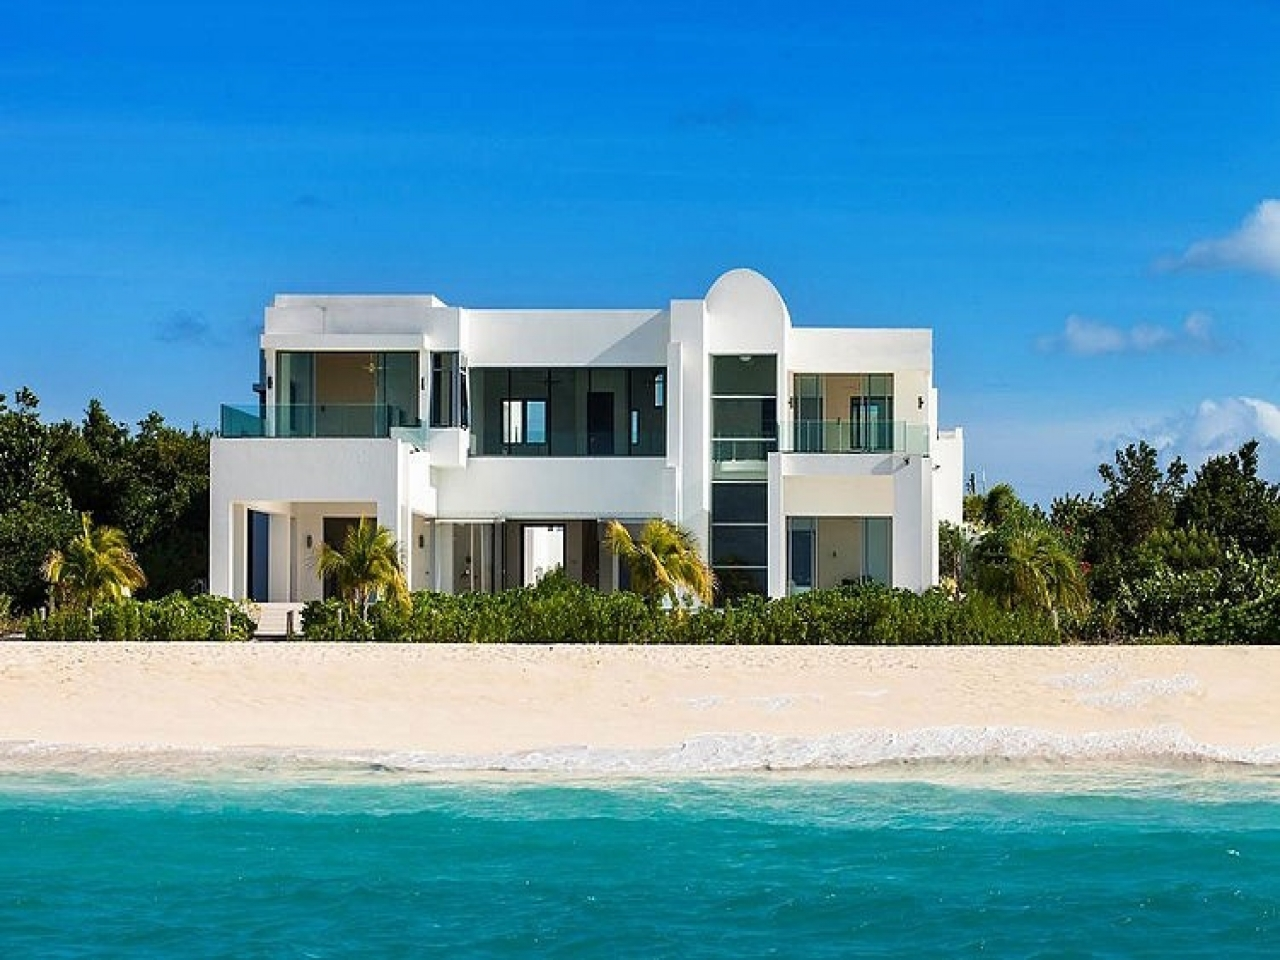 Beautiful beach houses caribbean beach house designs seaside home designs - Beach home design ...